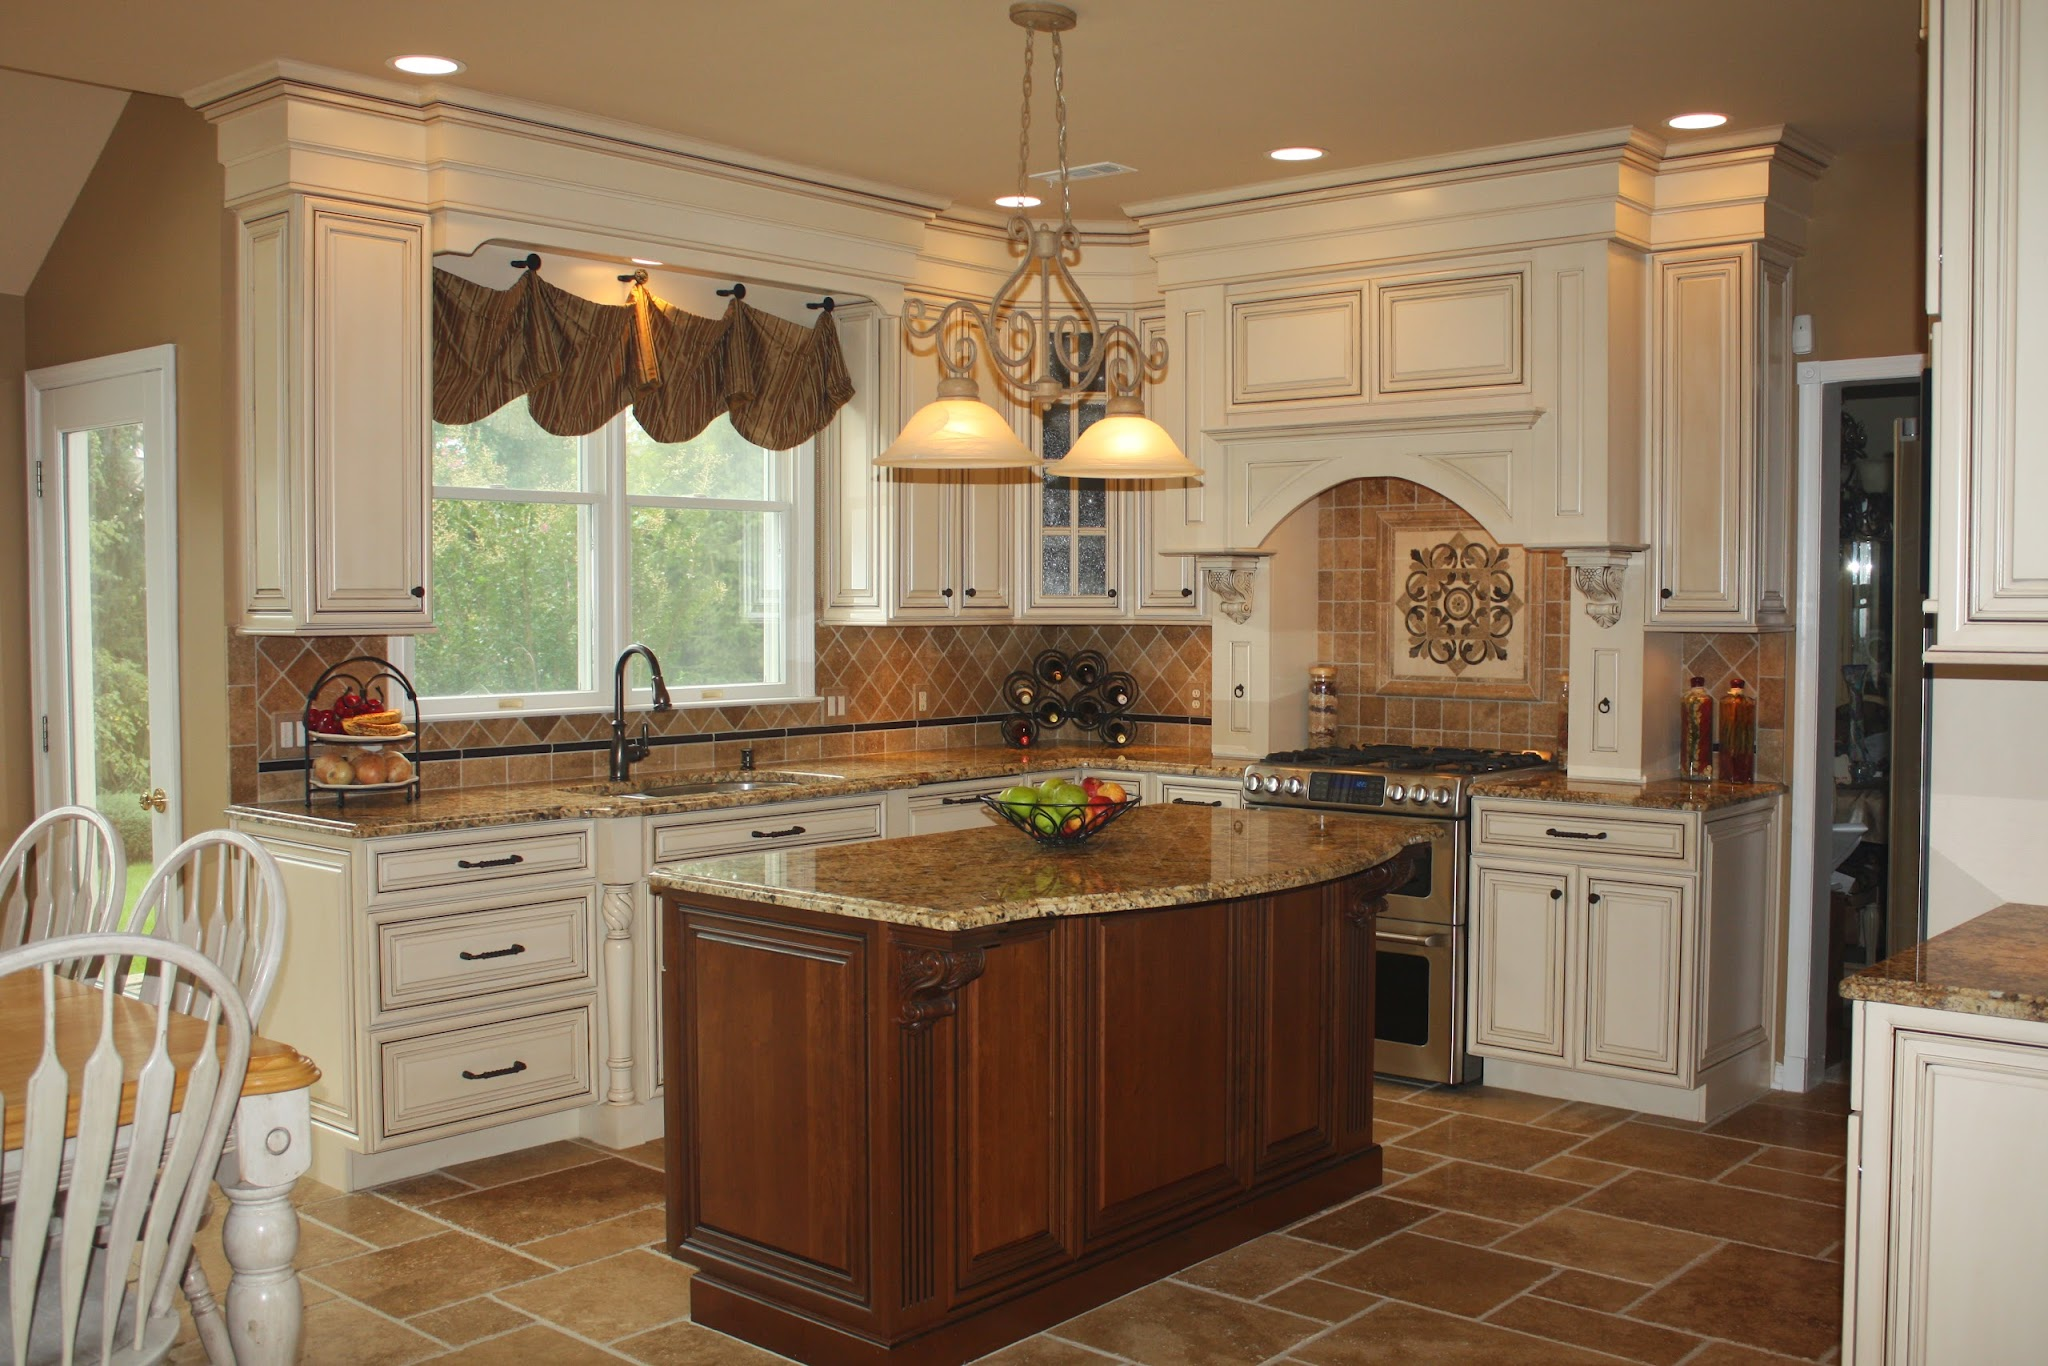 Houzz kitchen dreams house furniture for Photos of remodeled kitchens